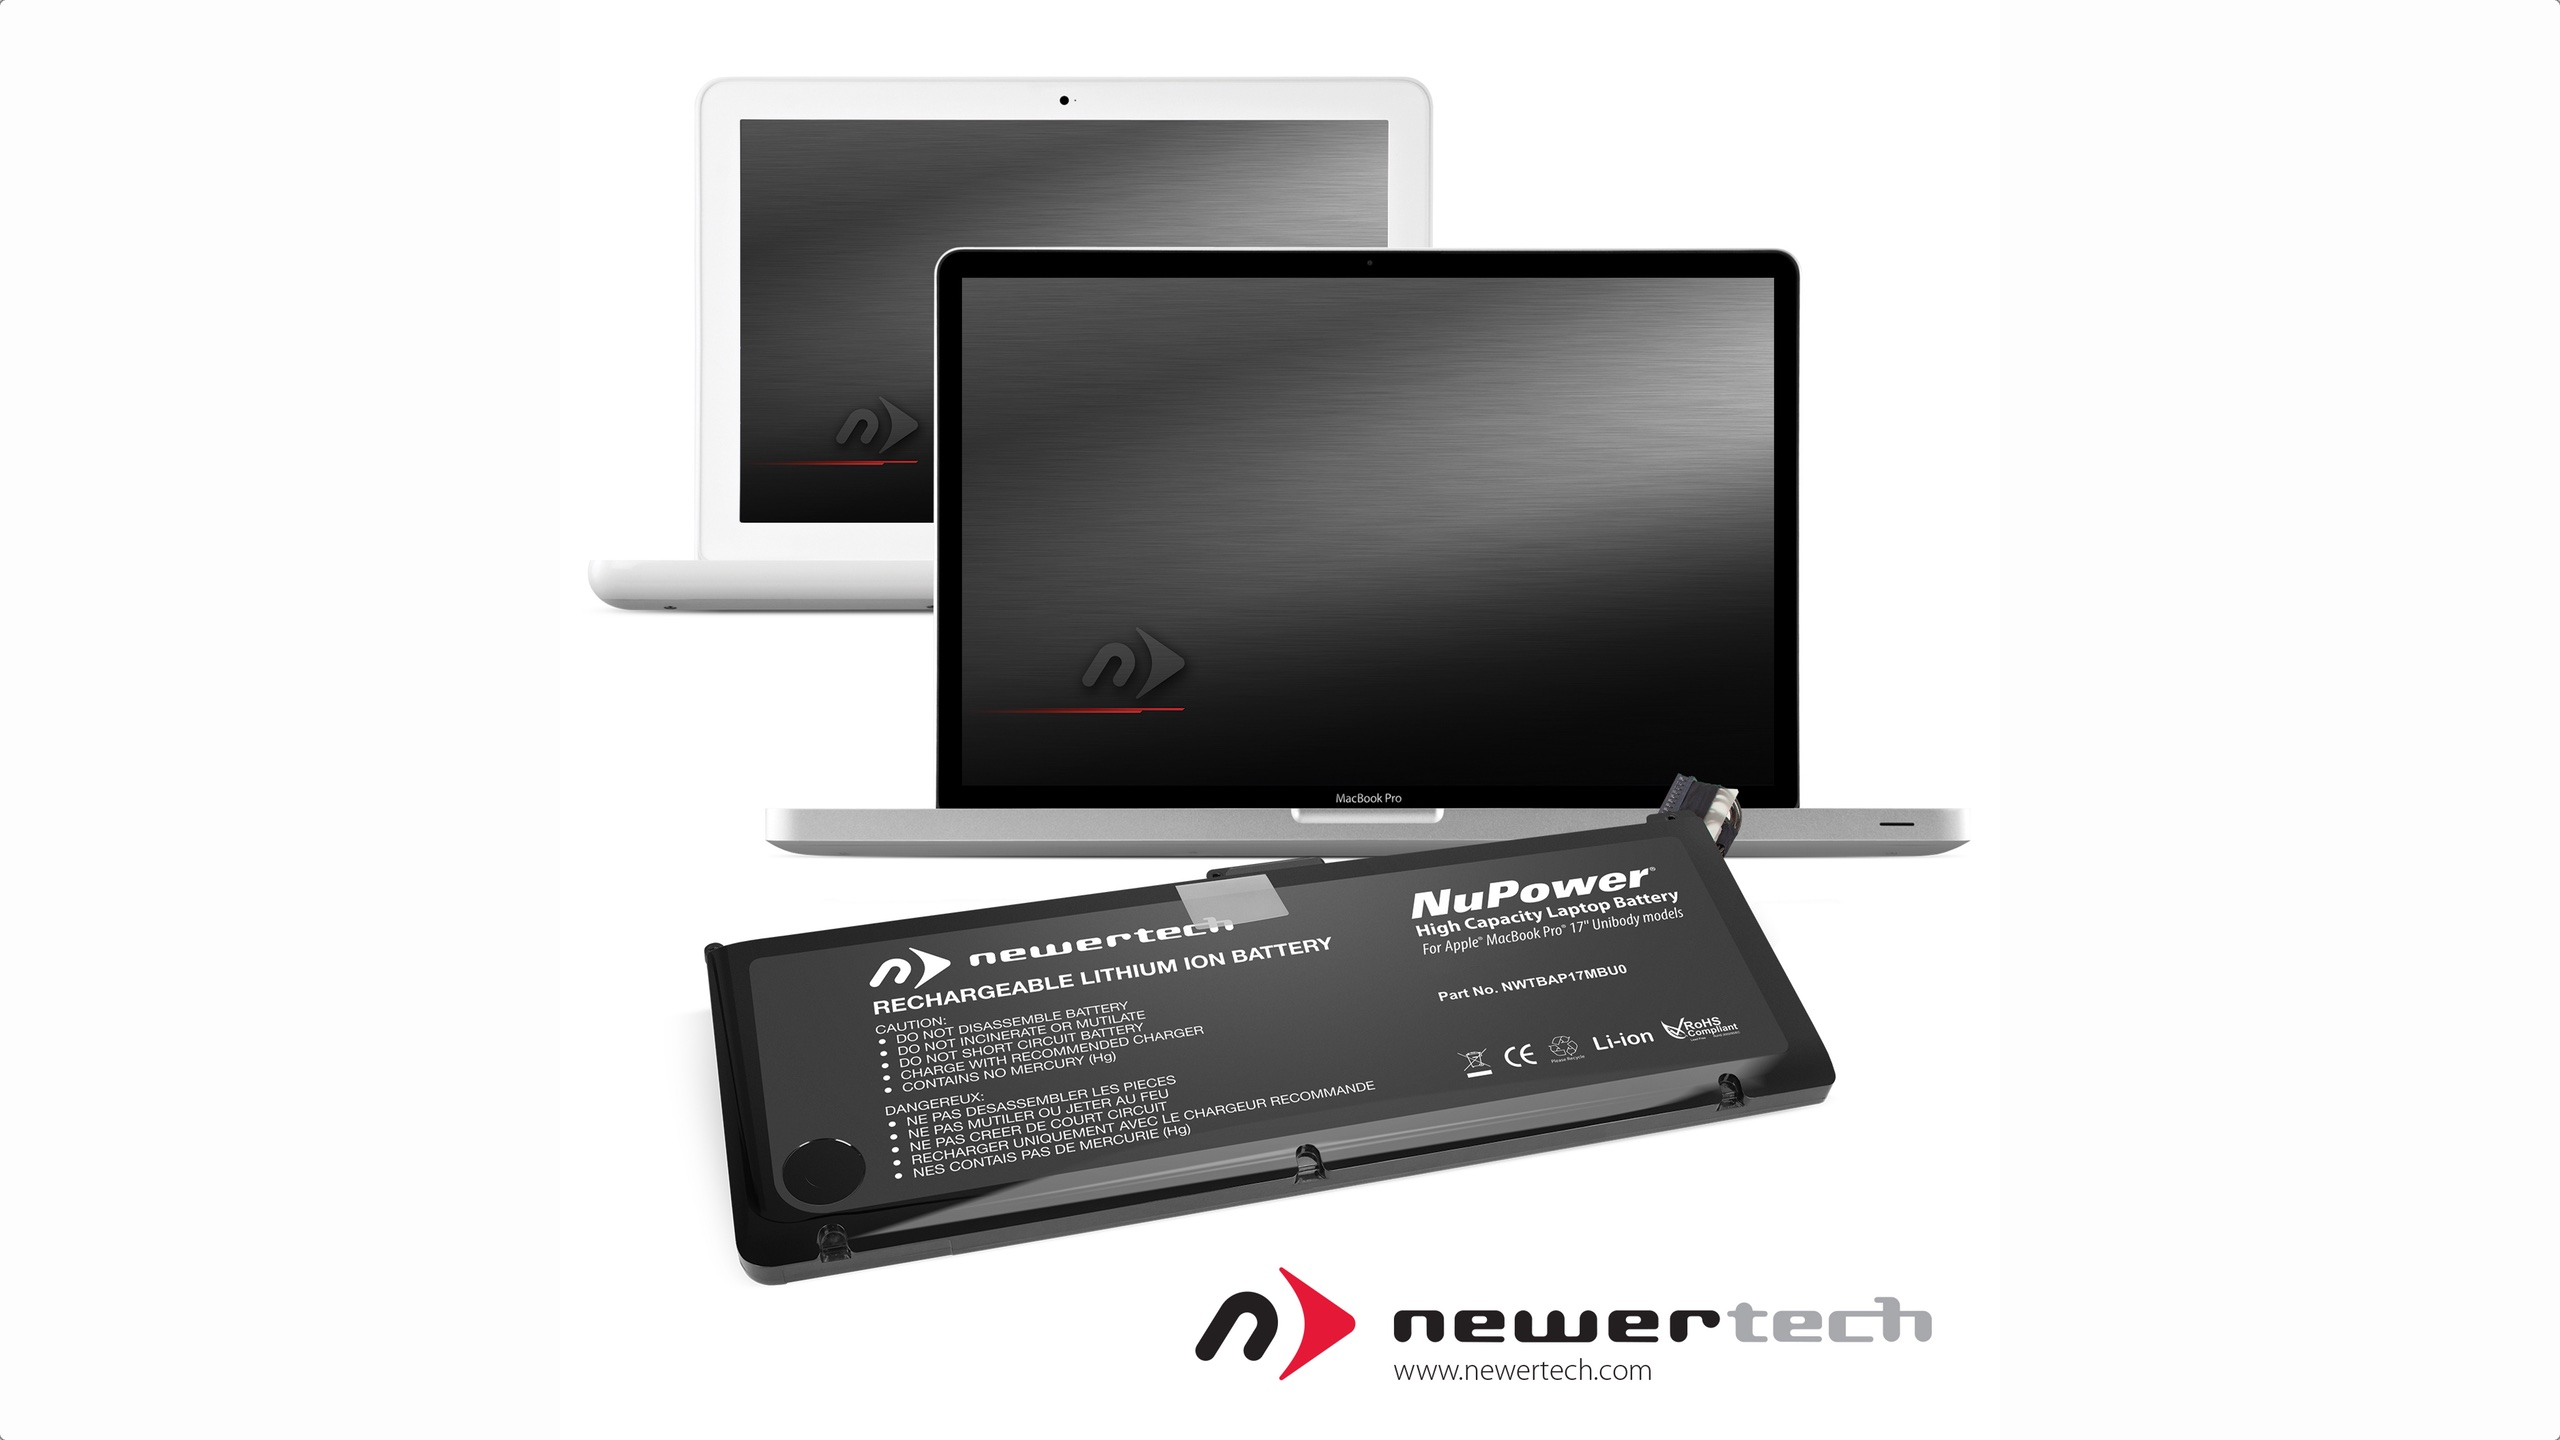 Newer-tech-nupower-macbook-pro-13-17